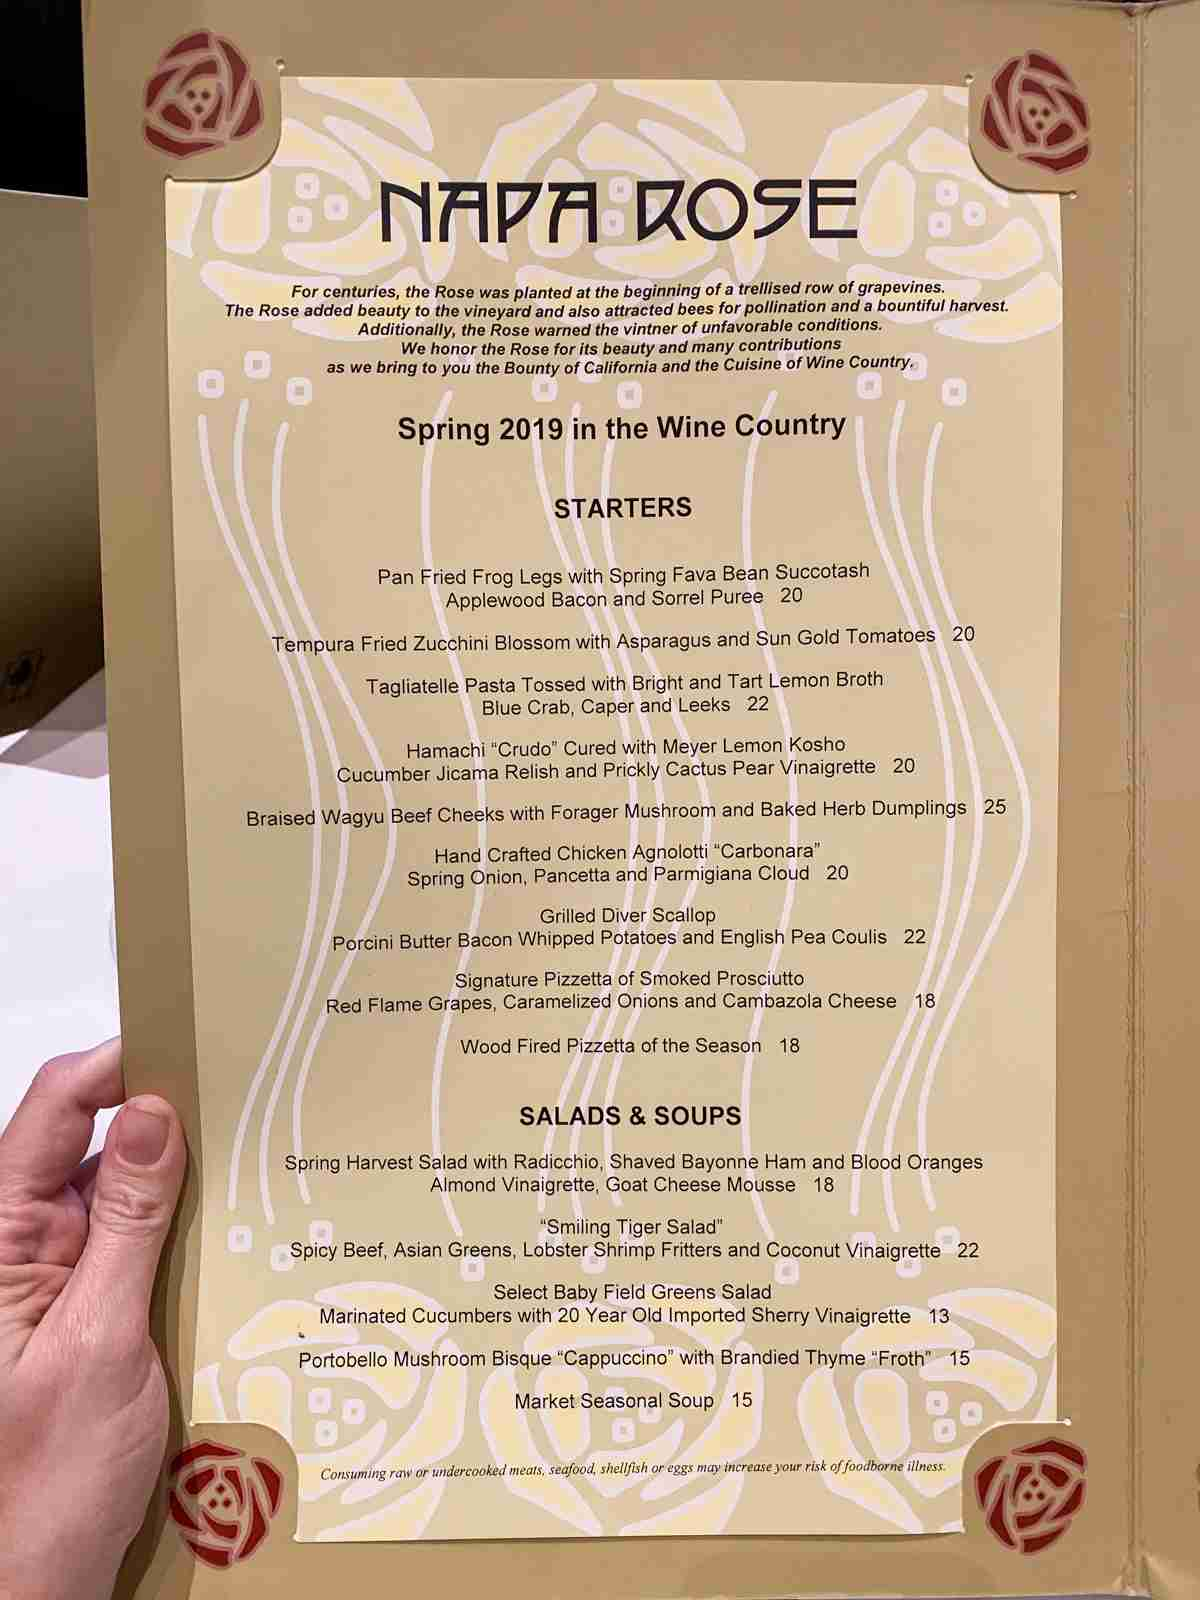 Disneyland Grand Californian Hotel Menu